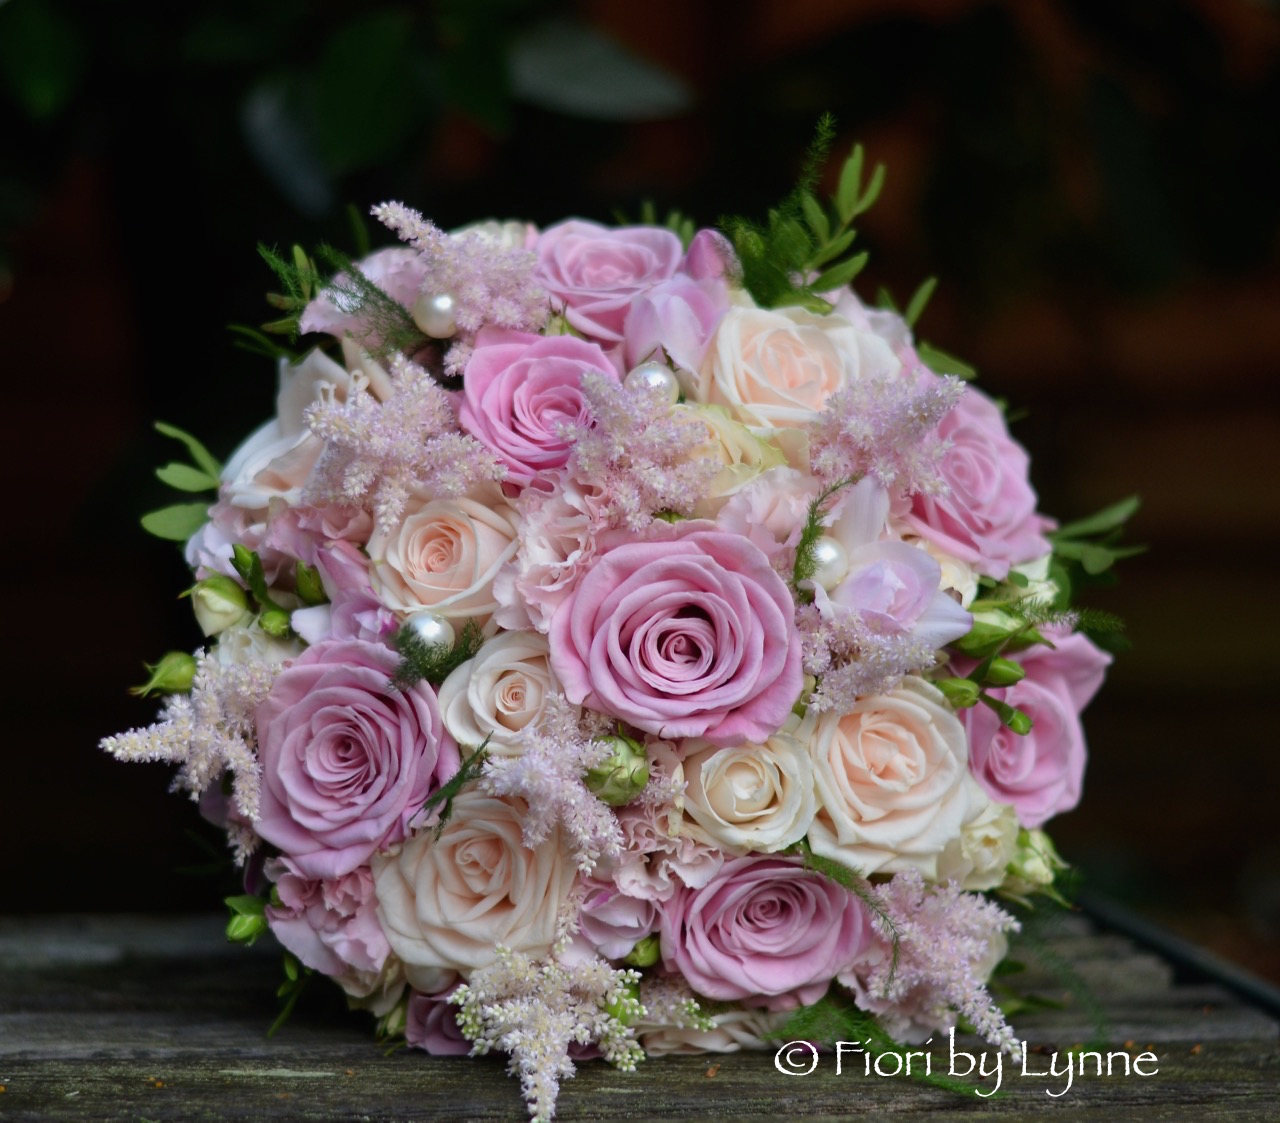 Wedding Flowers Blog: Emma\'s Shabby Chic Wedding Flowers, Rhinefield ...